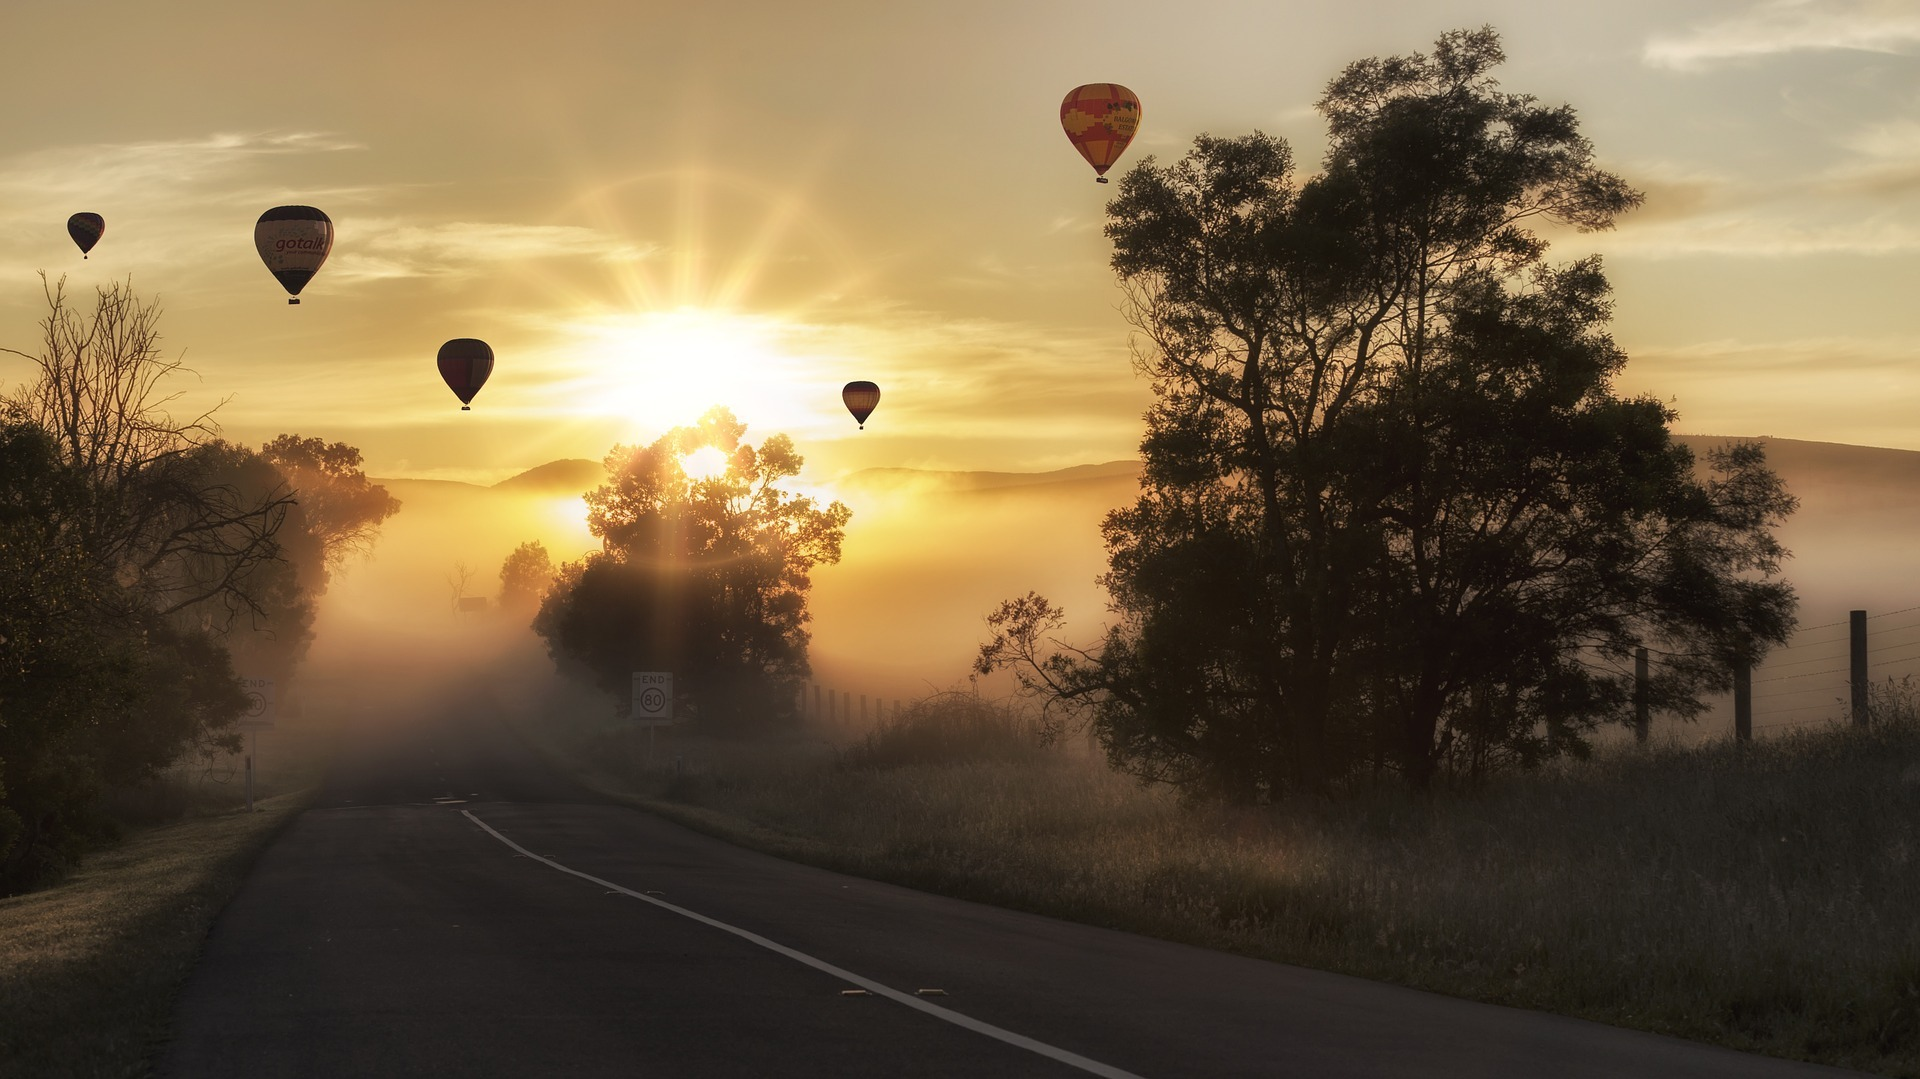 Balloons at sunrise, inspiration to divorce the drink